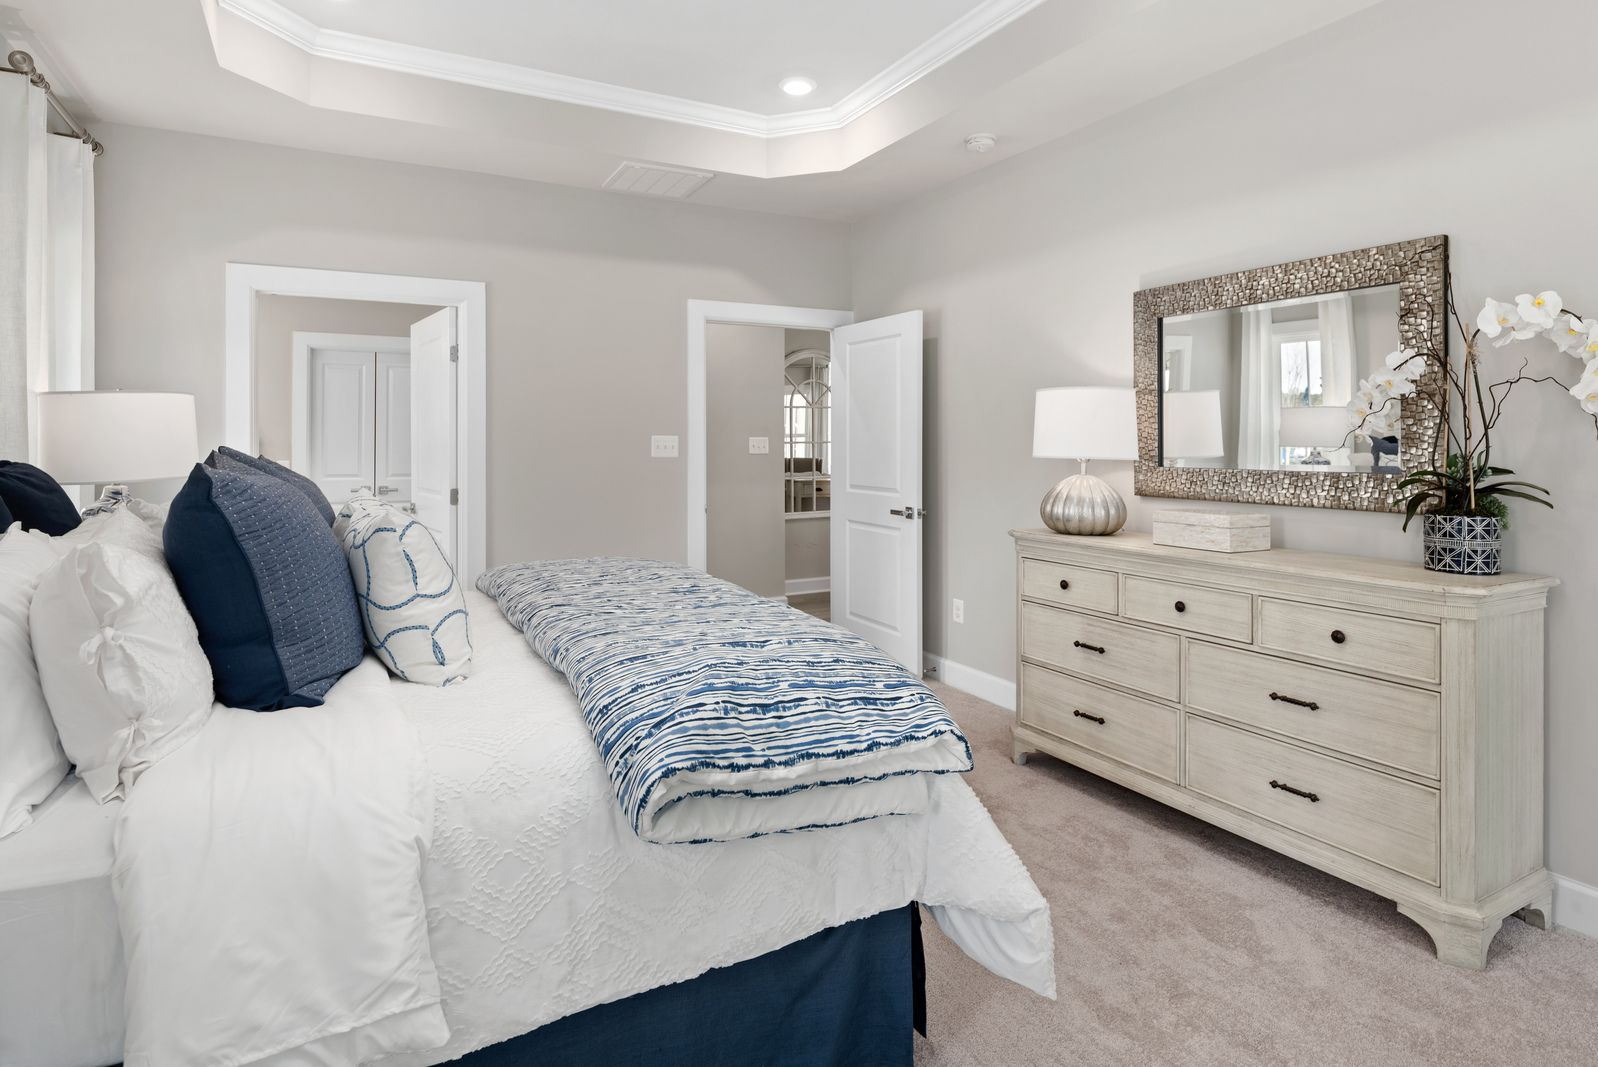 Bedroom featured in the Stapleton By Ryan Homes in Nashville, TN